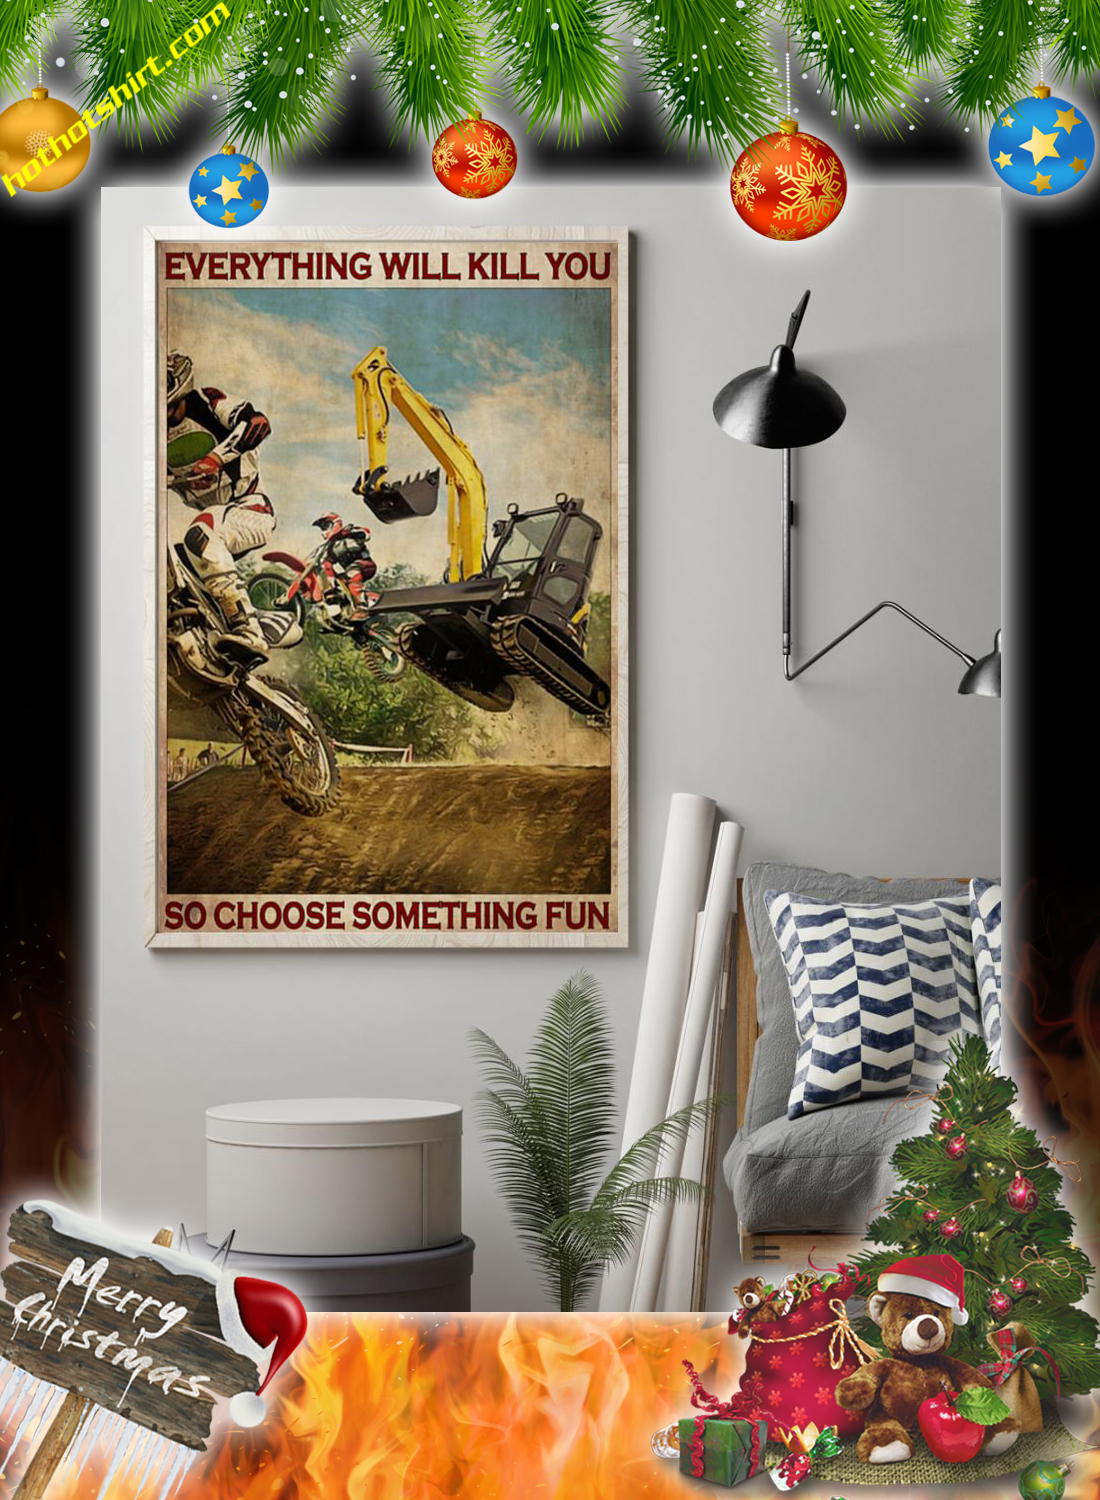 Motocross and excavator everything will kill you so choose something fun poster 1